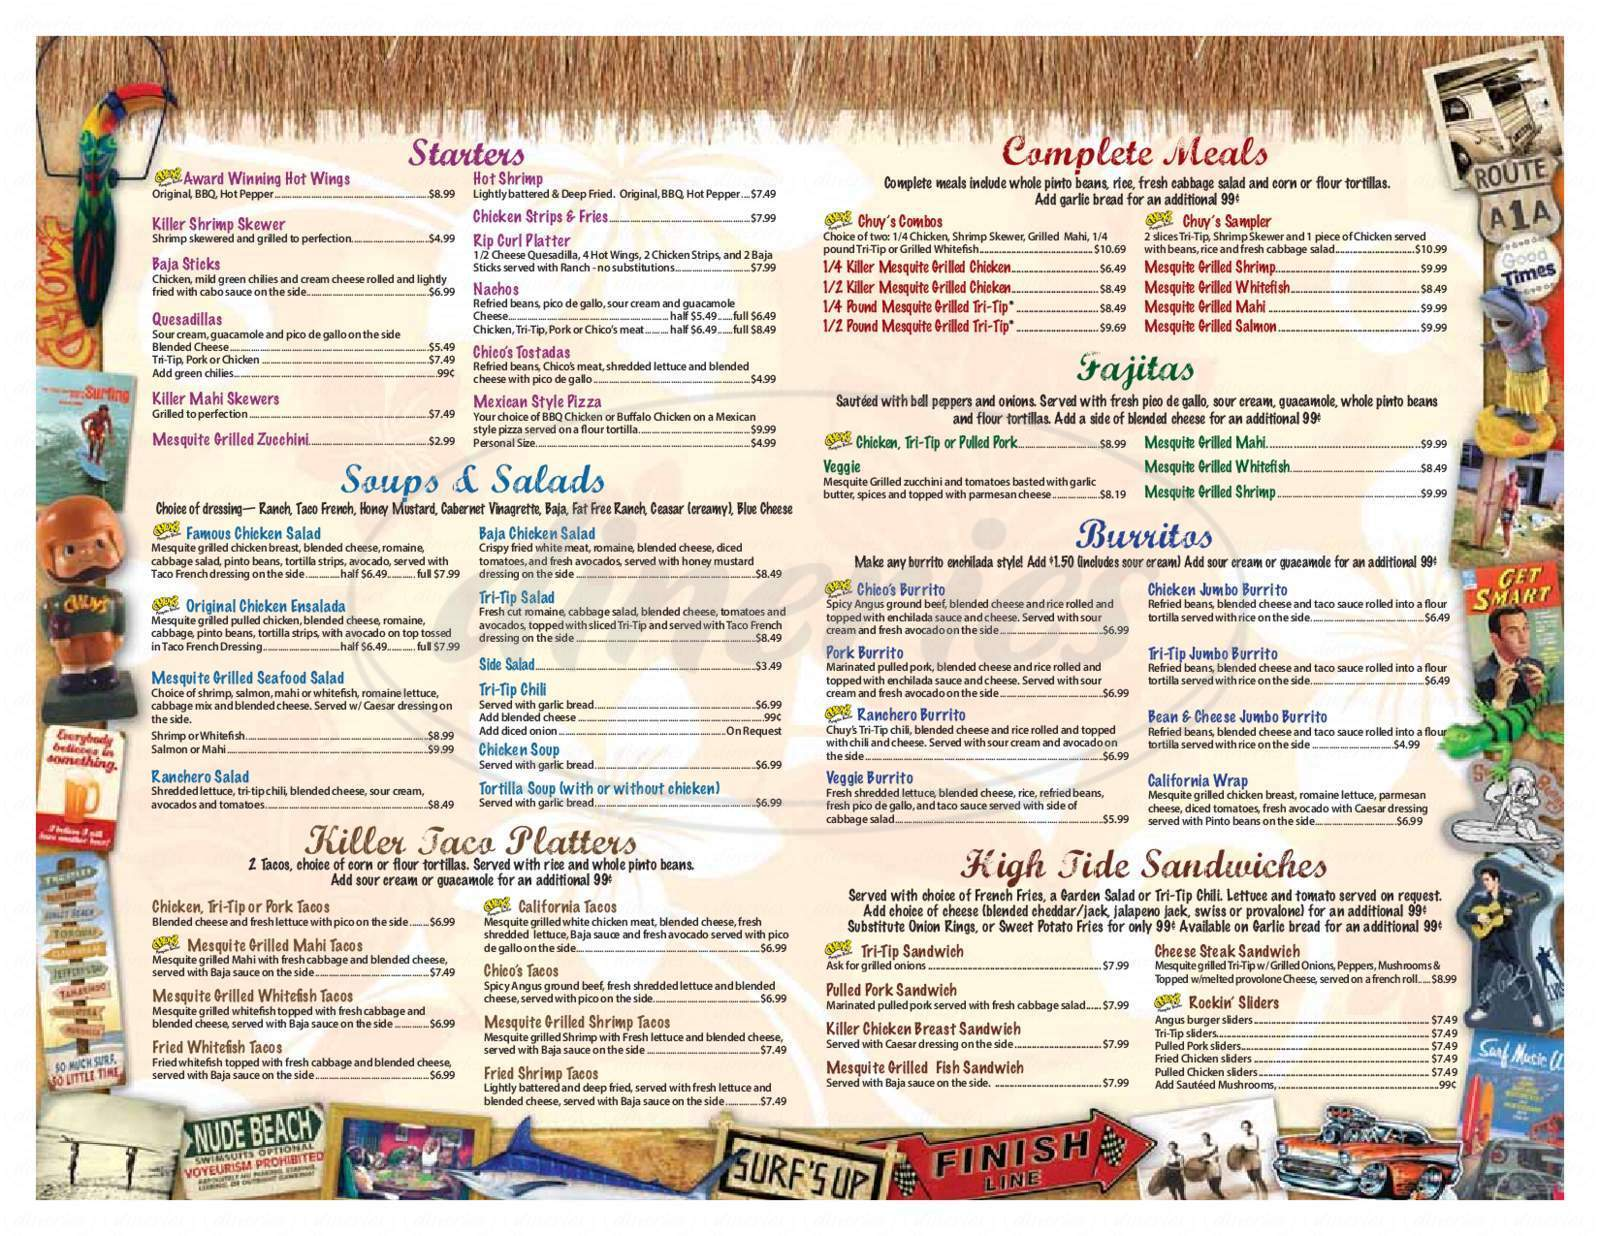 menu for Chuy's Mesquite Broiler